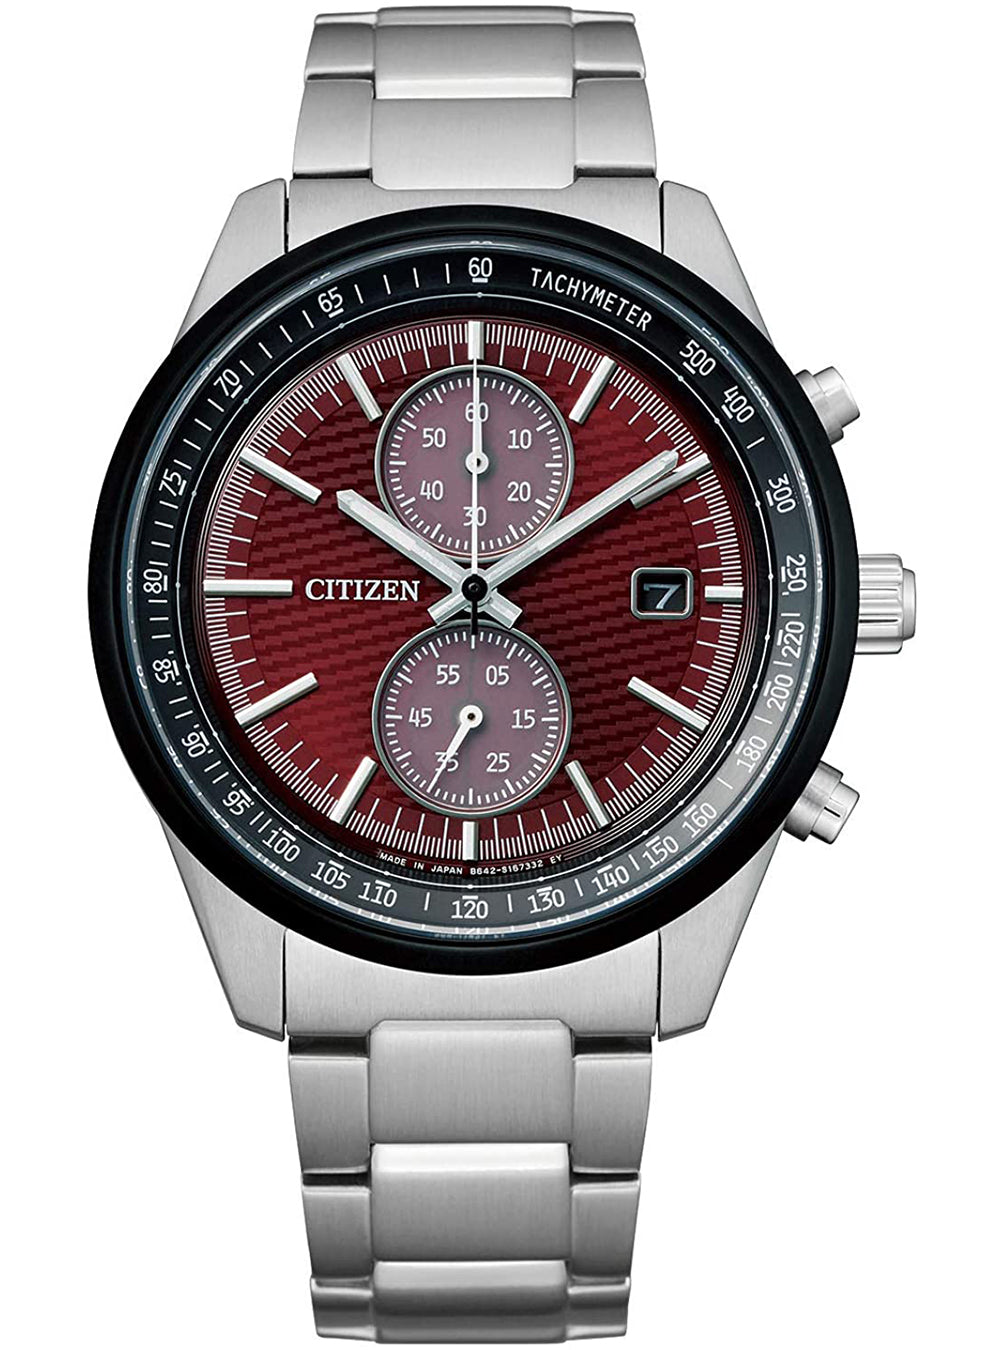 CITIZEN JOUNETSU COLLECTION CA7034-96W MADE IN JAPAN LIMITED 2200 JDM